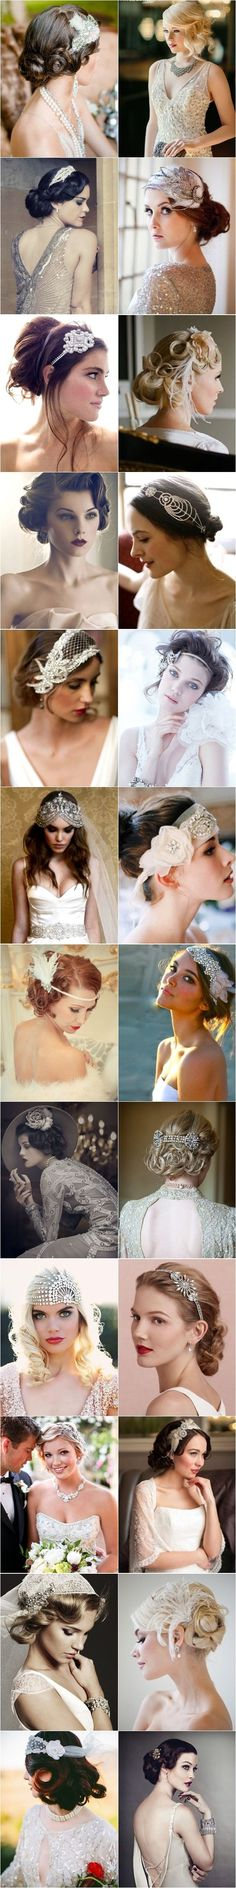 """""""Wedding Philippines - 1920s Gatsby Glam Inspired Hairstyles"""" Tons of ideas for our hair for your future Gatsby-themed wedding! Lol @kaymac2012"""